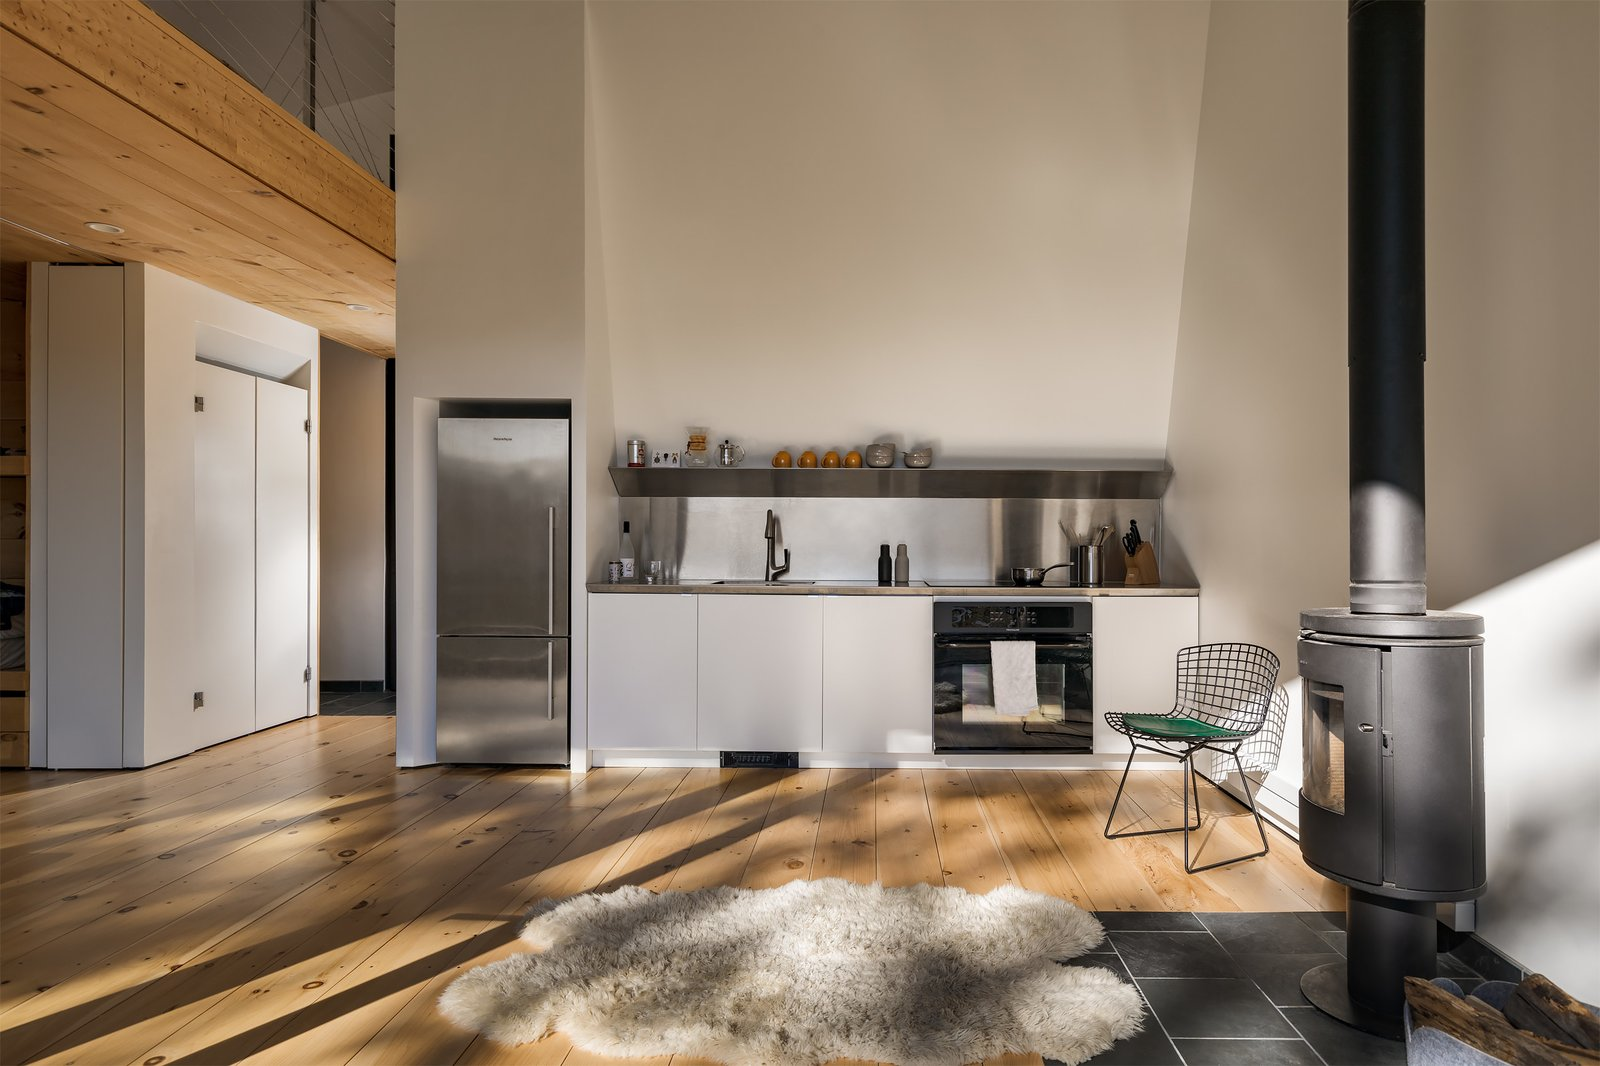 Kitchen, Medium Hardwood Floor, White Cabinet, Refrigerator, and Metal Counter  Photo 15 of 18 in A Prefab Cabin in New Hampshire Is a Magnificent Mountain Retreat